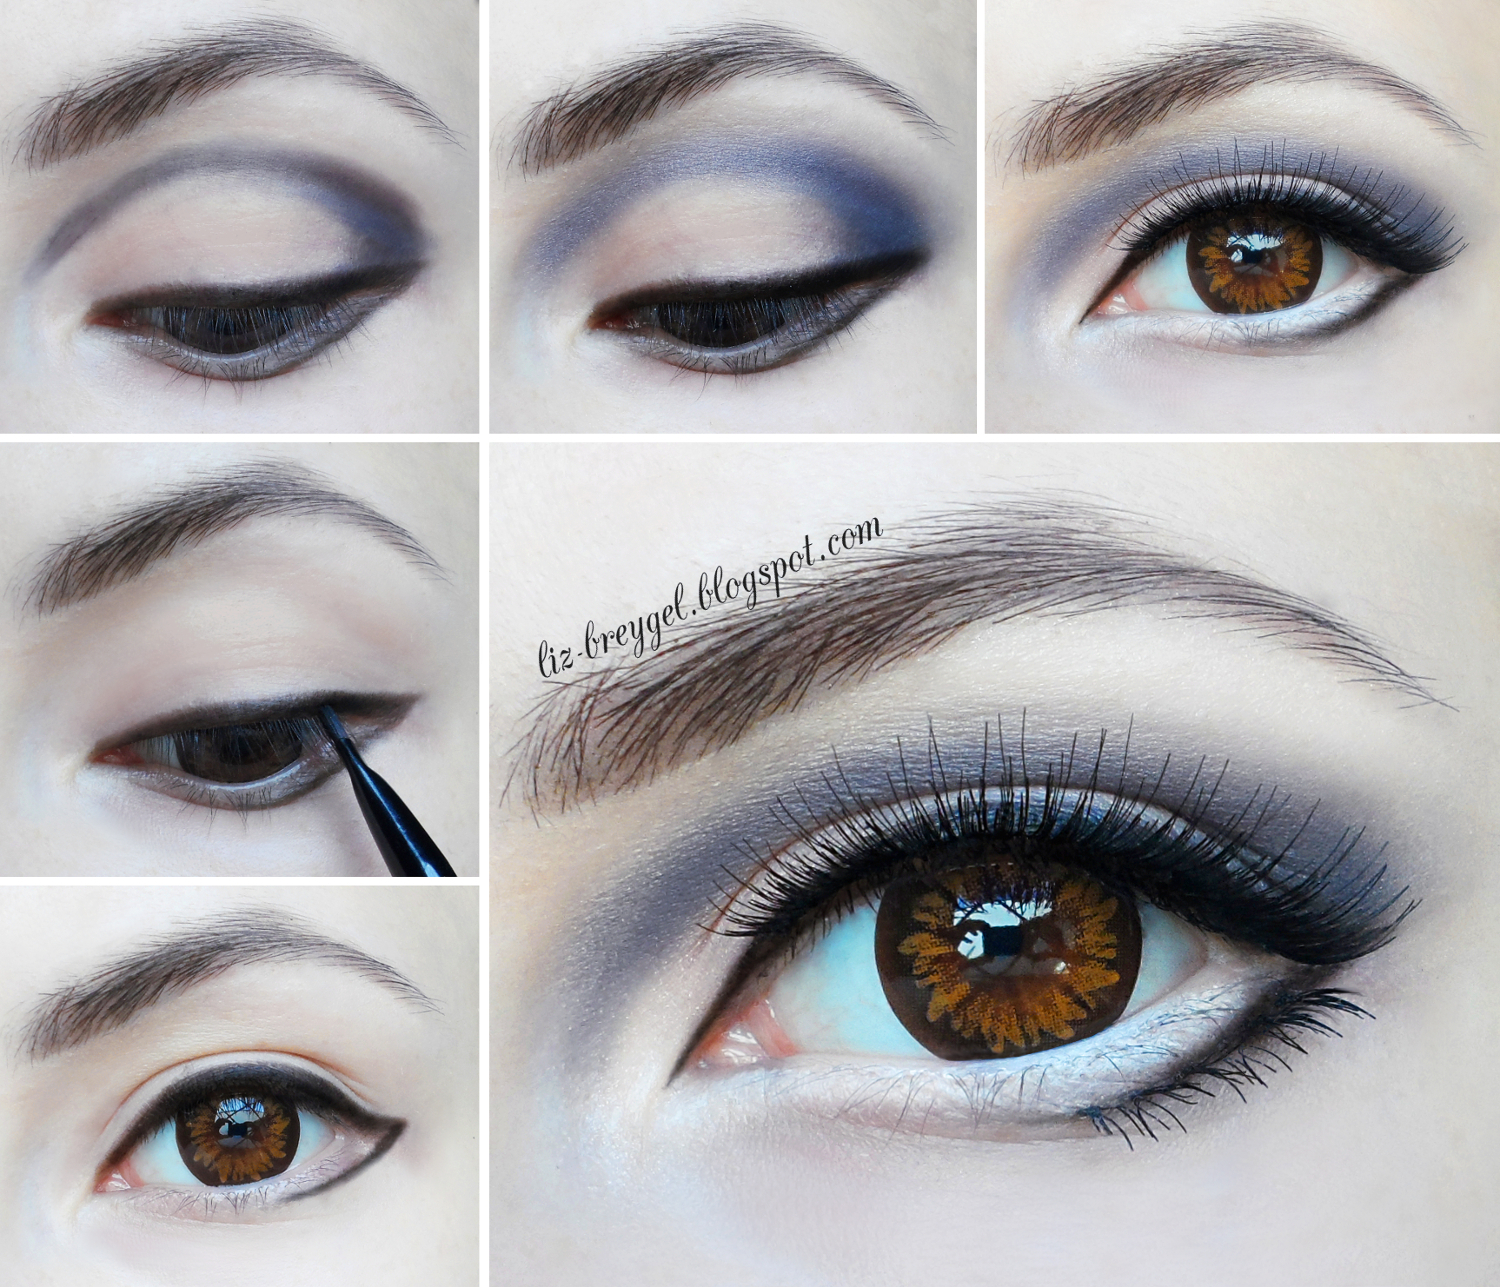 How to apply makeup to make your eyes look bigger